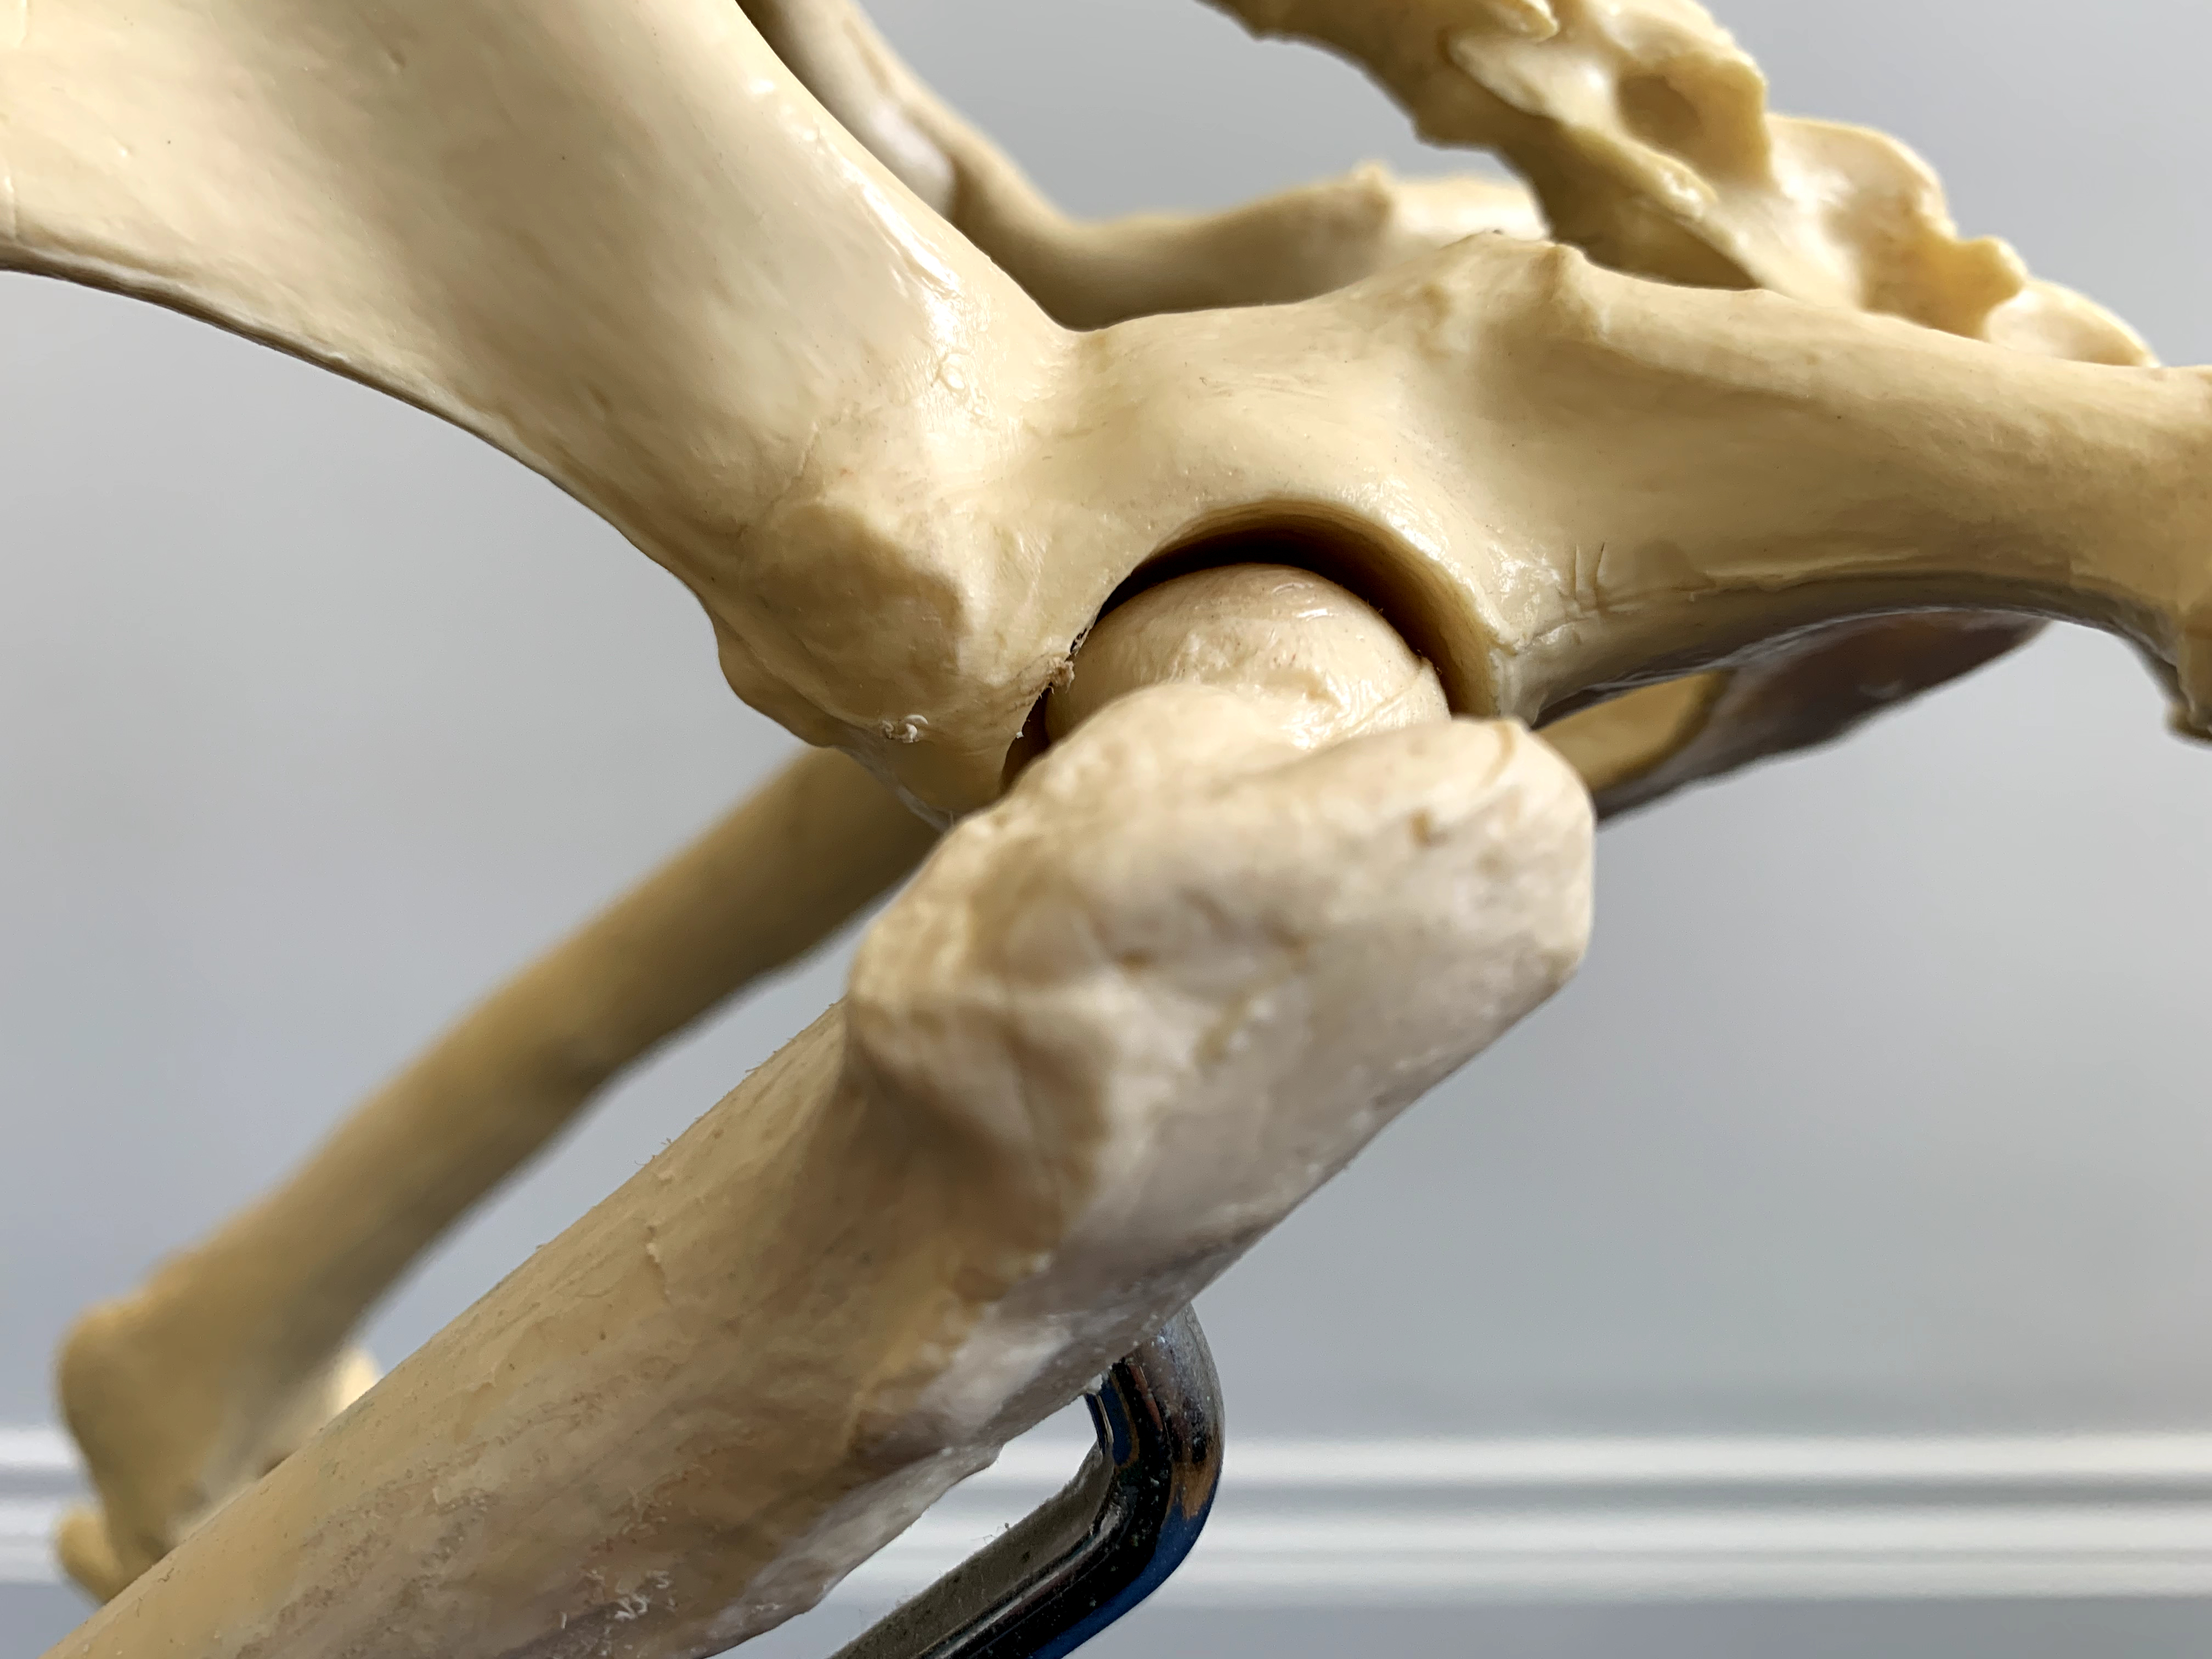 The hip joint consists of the femoral head of the femur and the os coxae of the pelvis. The hip joint is a synovial ball and socket joint.